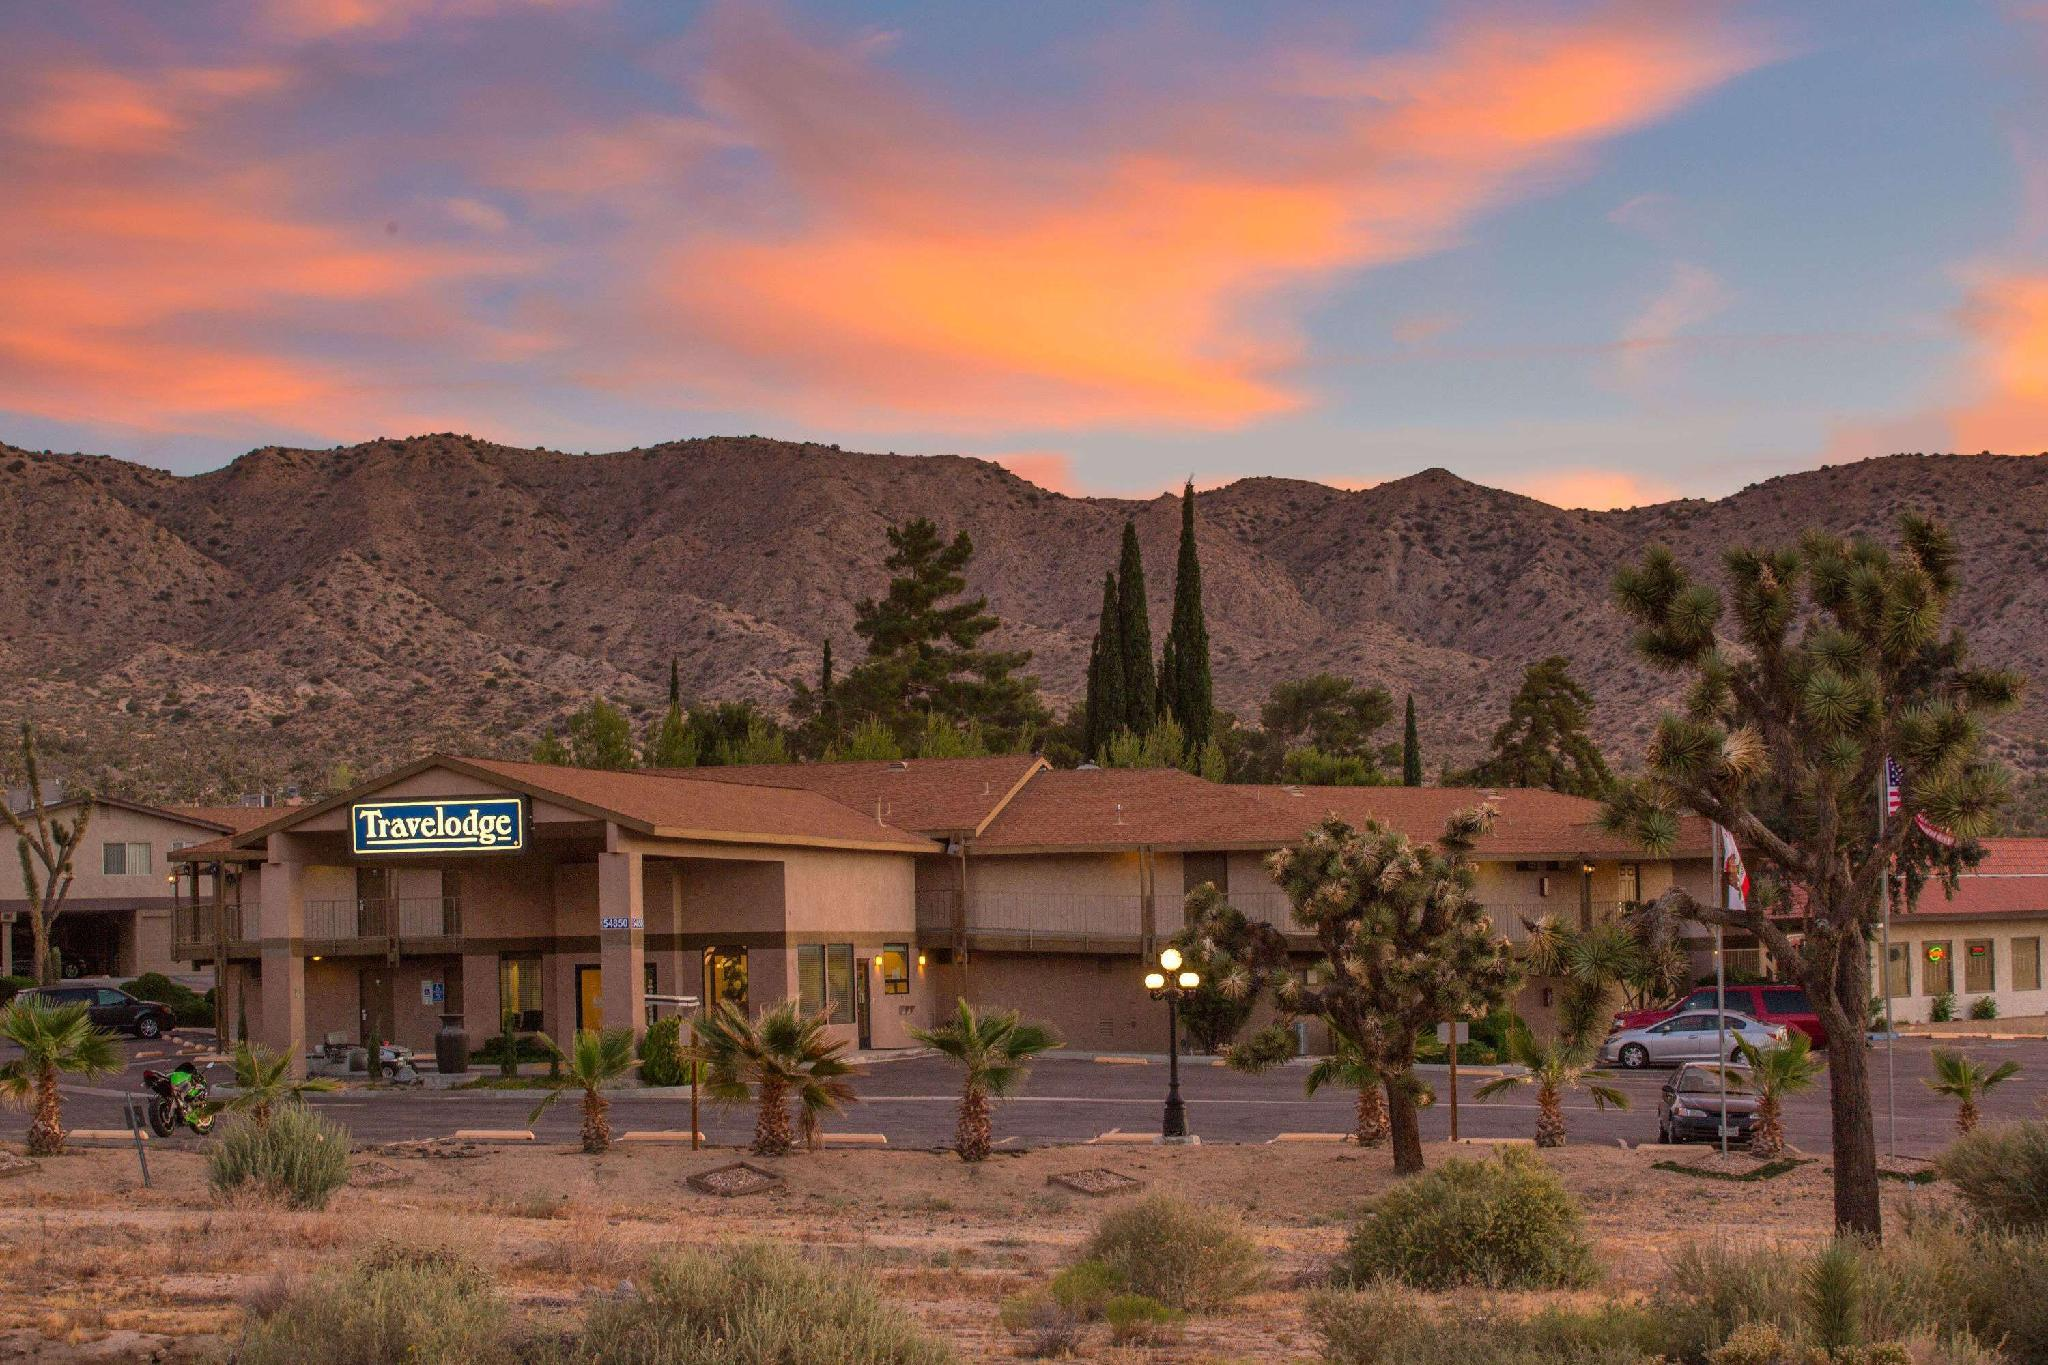 Travelodge Inn And Suites By Wyndham Yucca Valley Joshua Tree